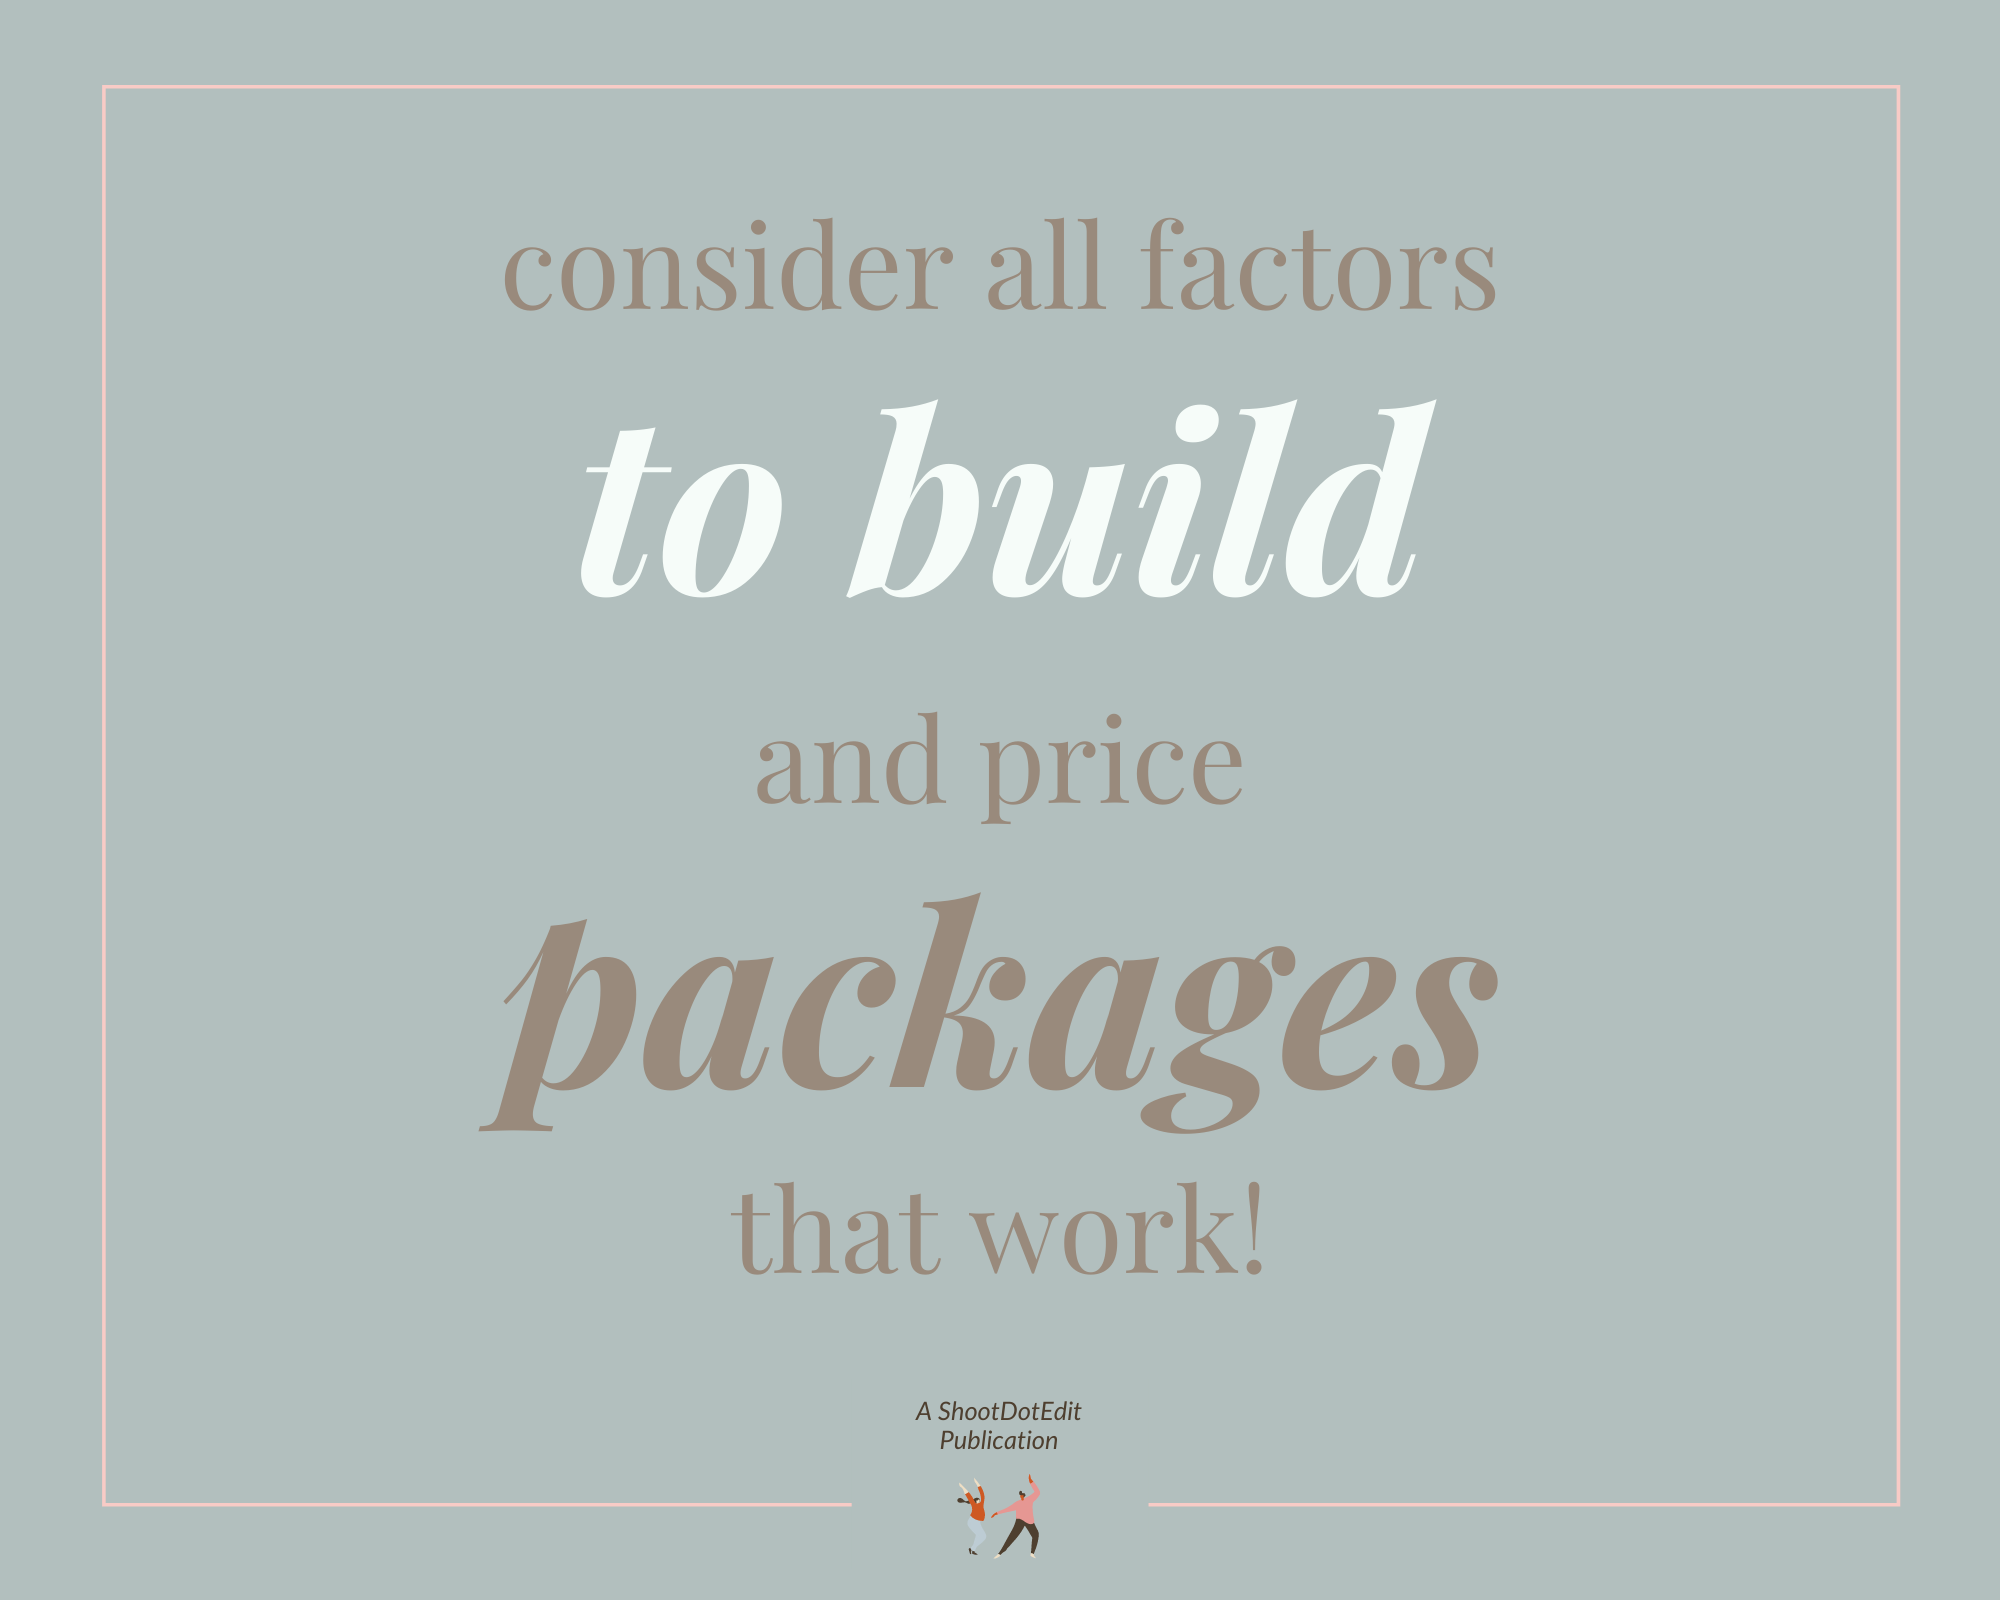 Infographic - Consider all factors to build and price packages that work